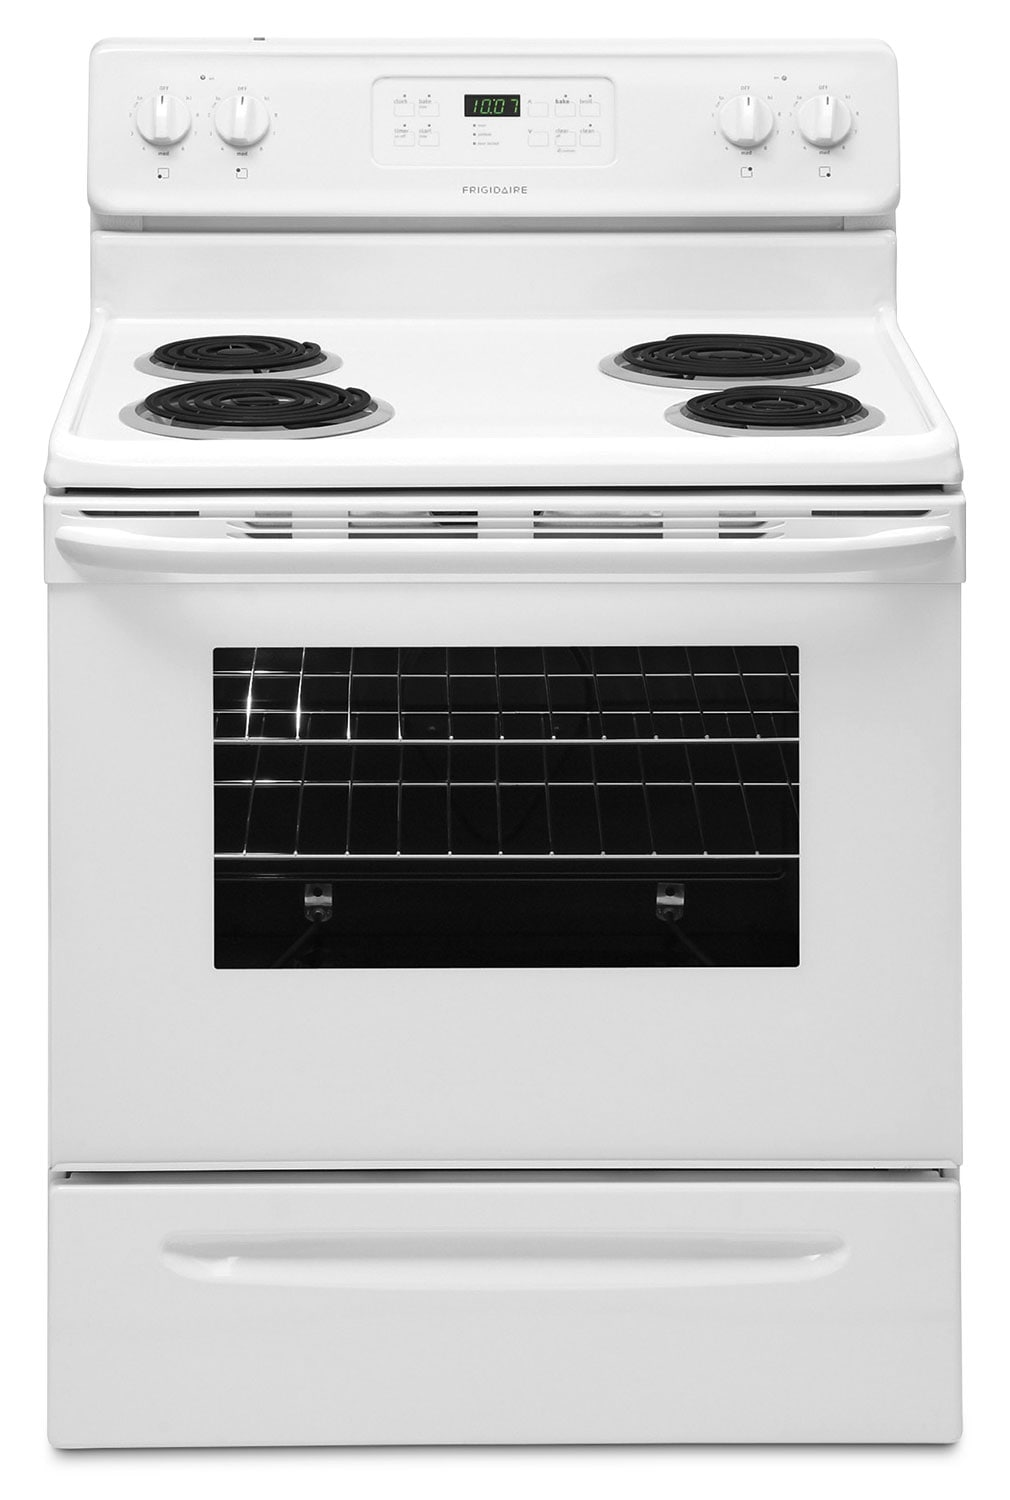 Frigidaire 5.3 Cu. Ft. Freestanding Electric Range – CFEF3016LW